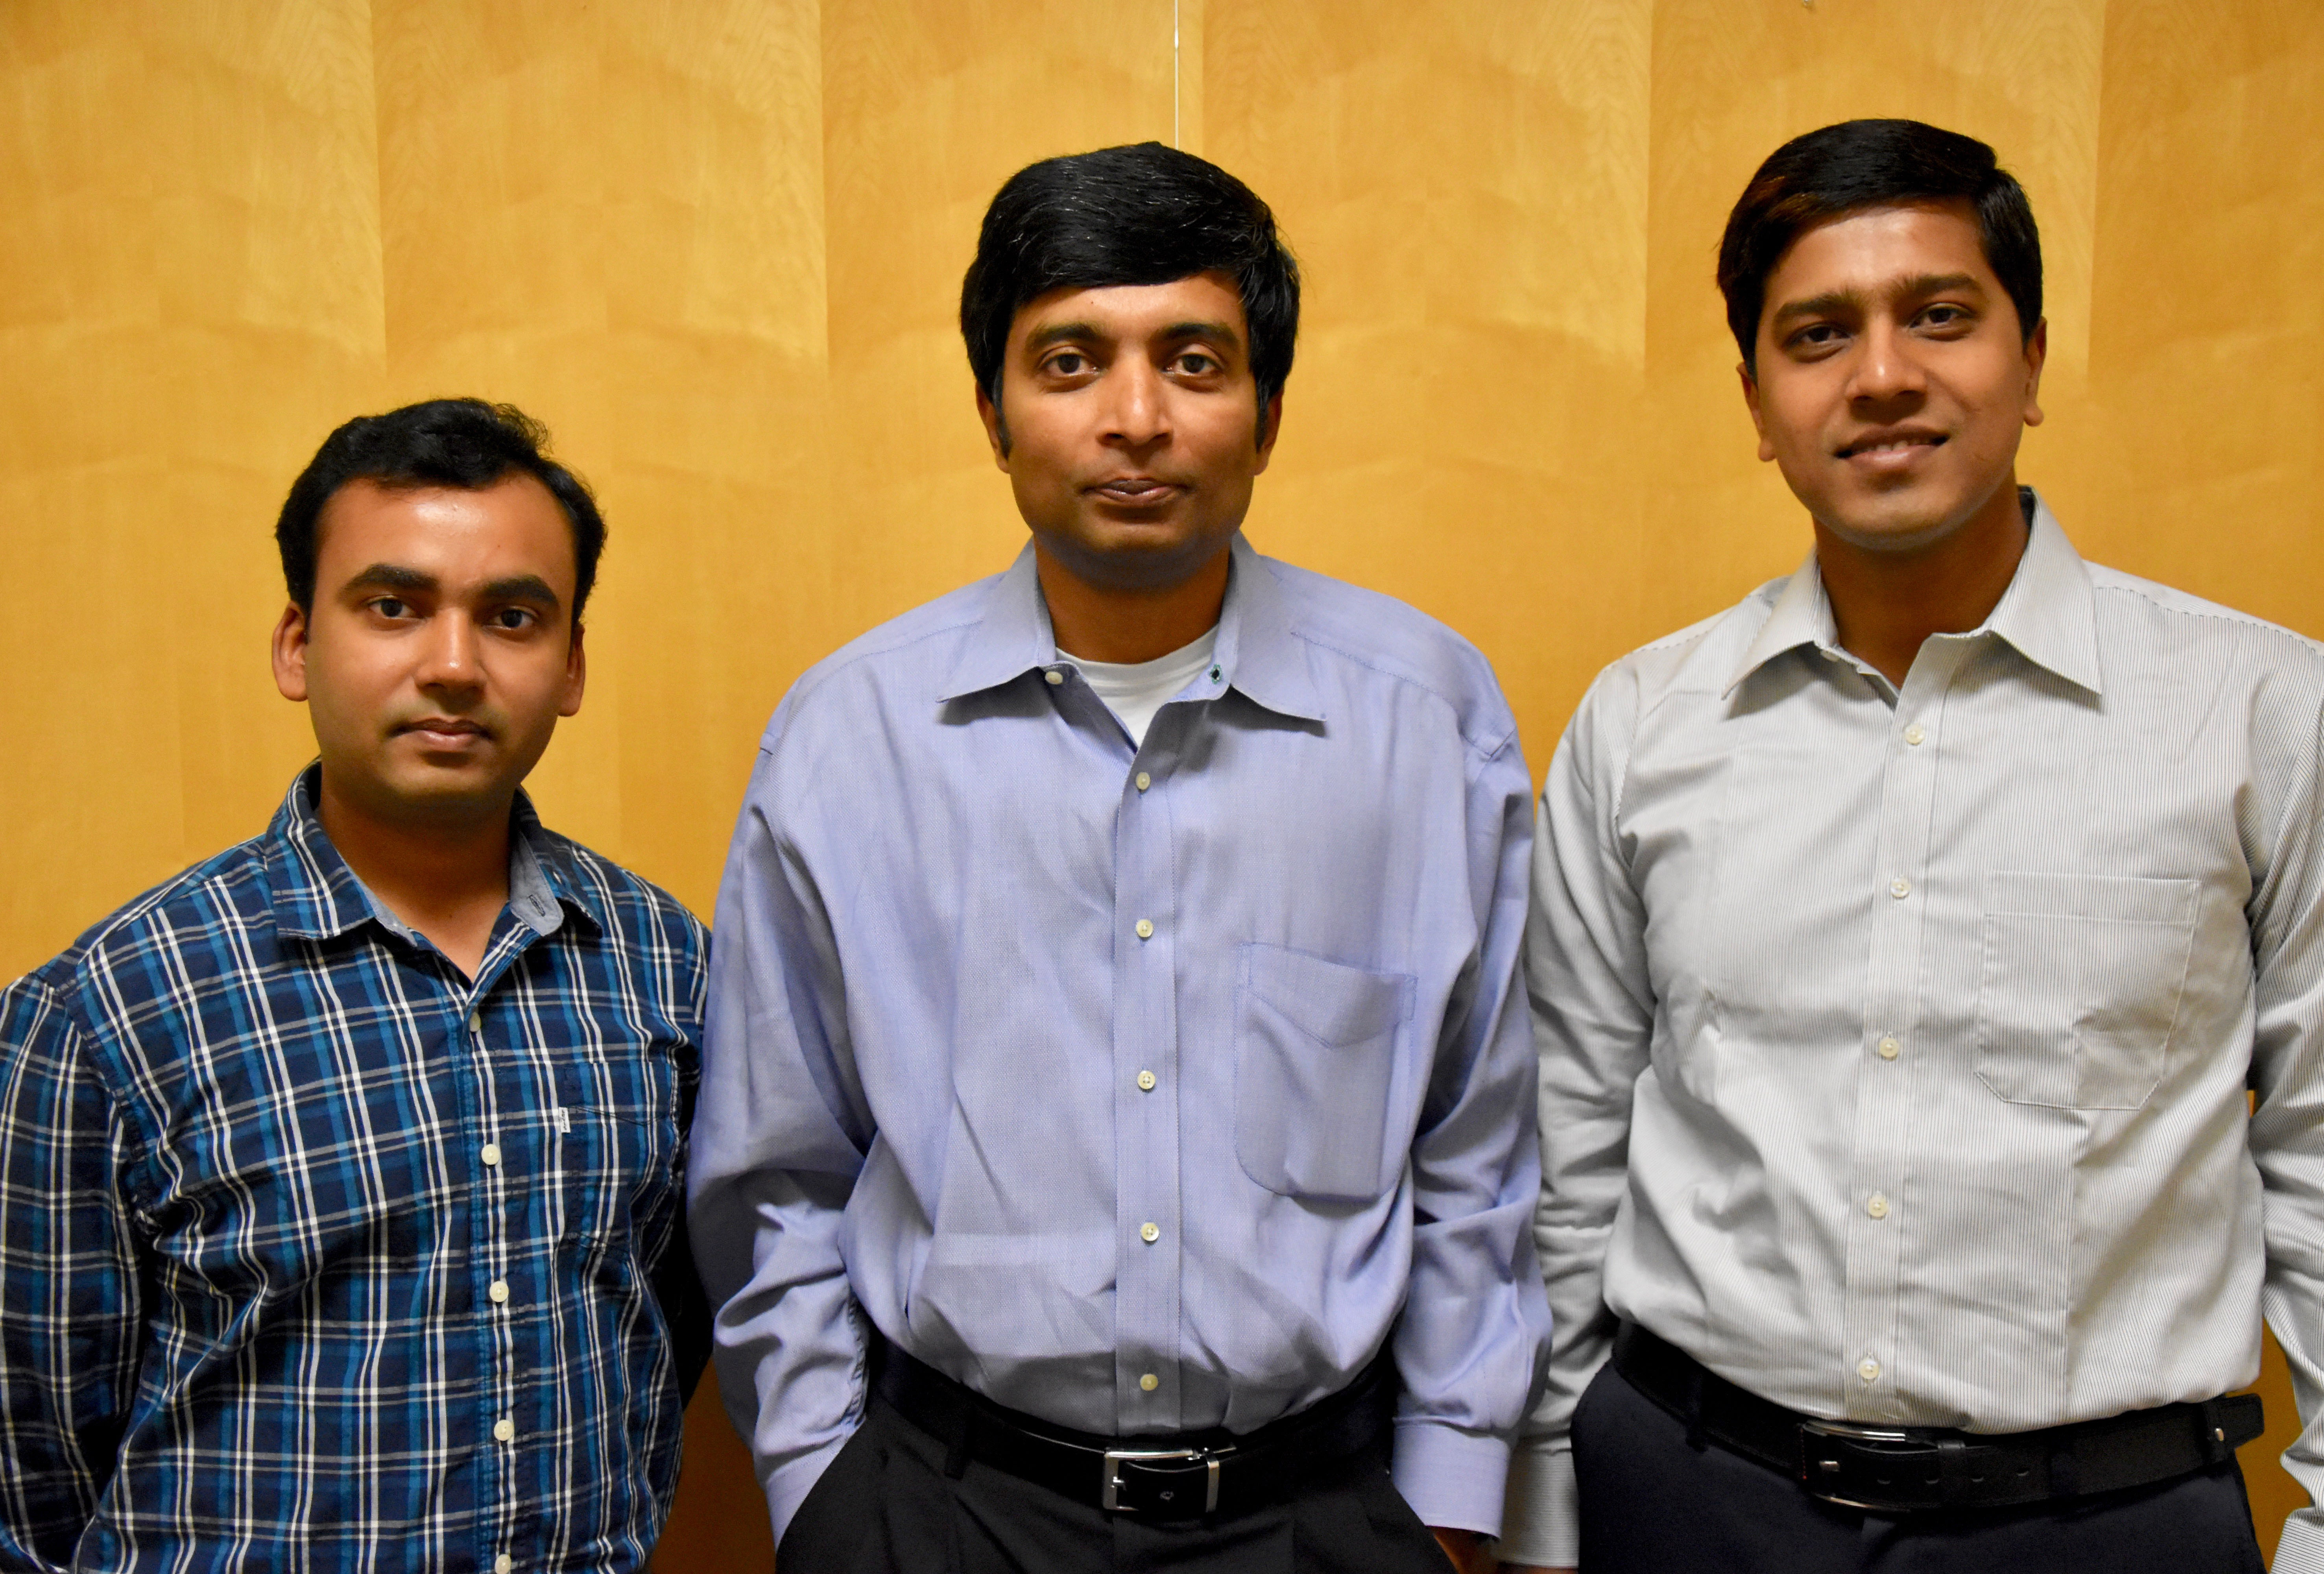 Dr. Latifur Khan & his Students, Swarpu Chandra and Ahsanul Haque